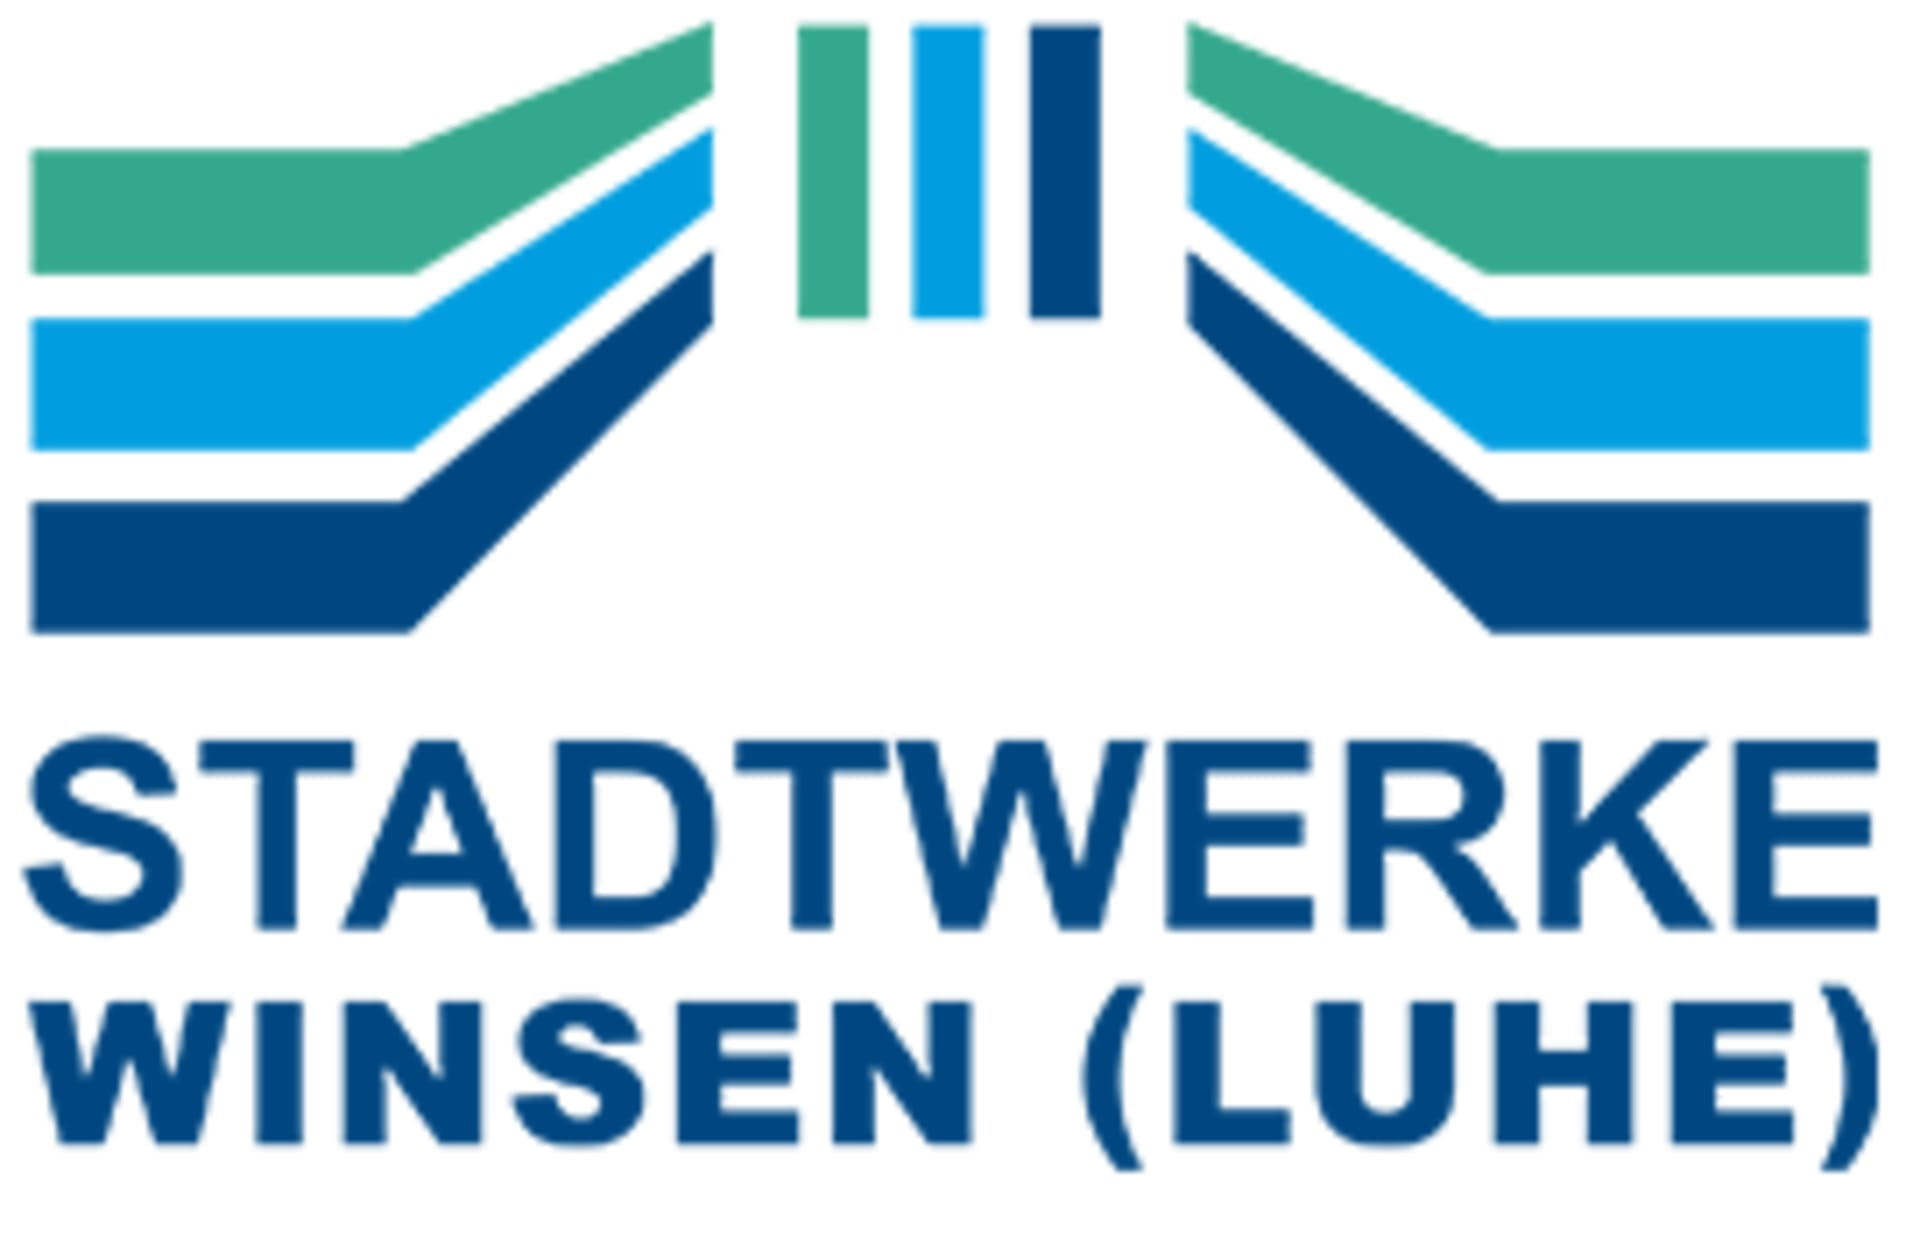 shows the logo from the company Stadtwerke Winsen (Luhe) GmbH